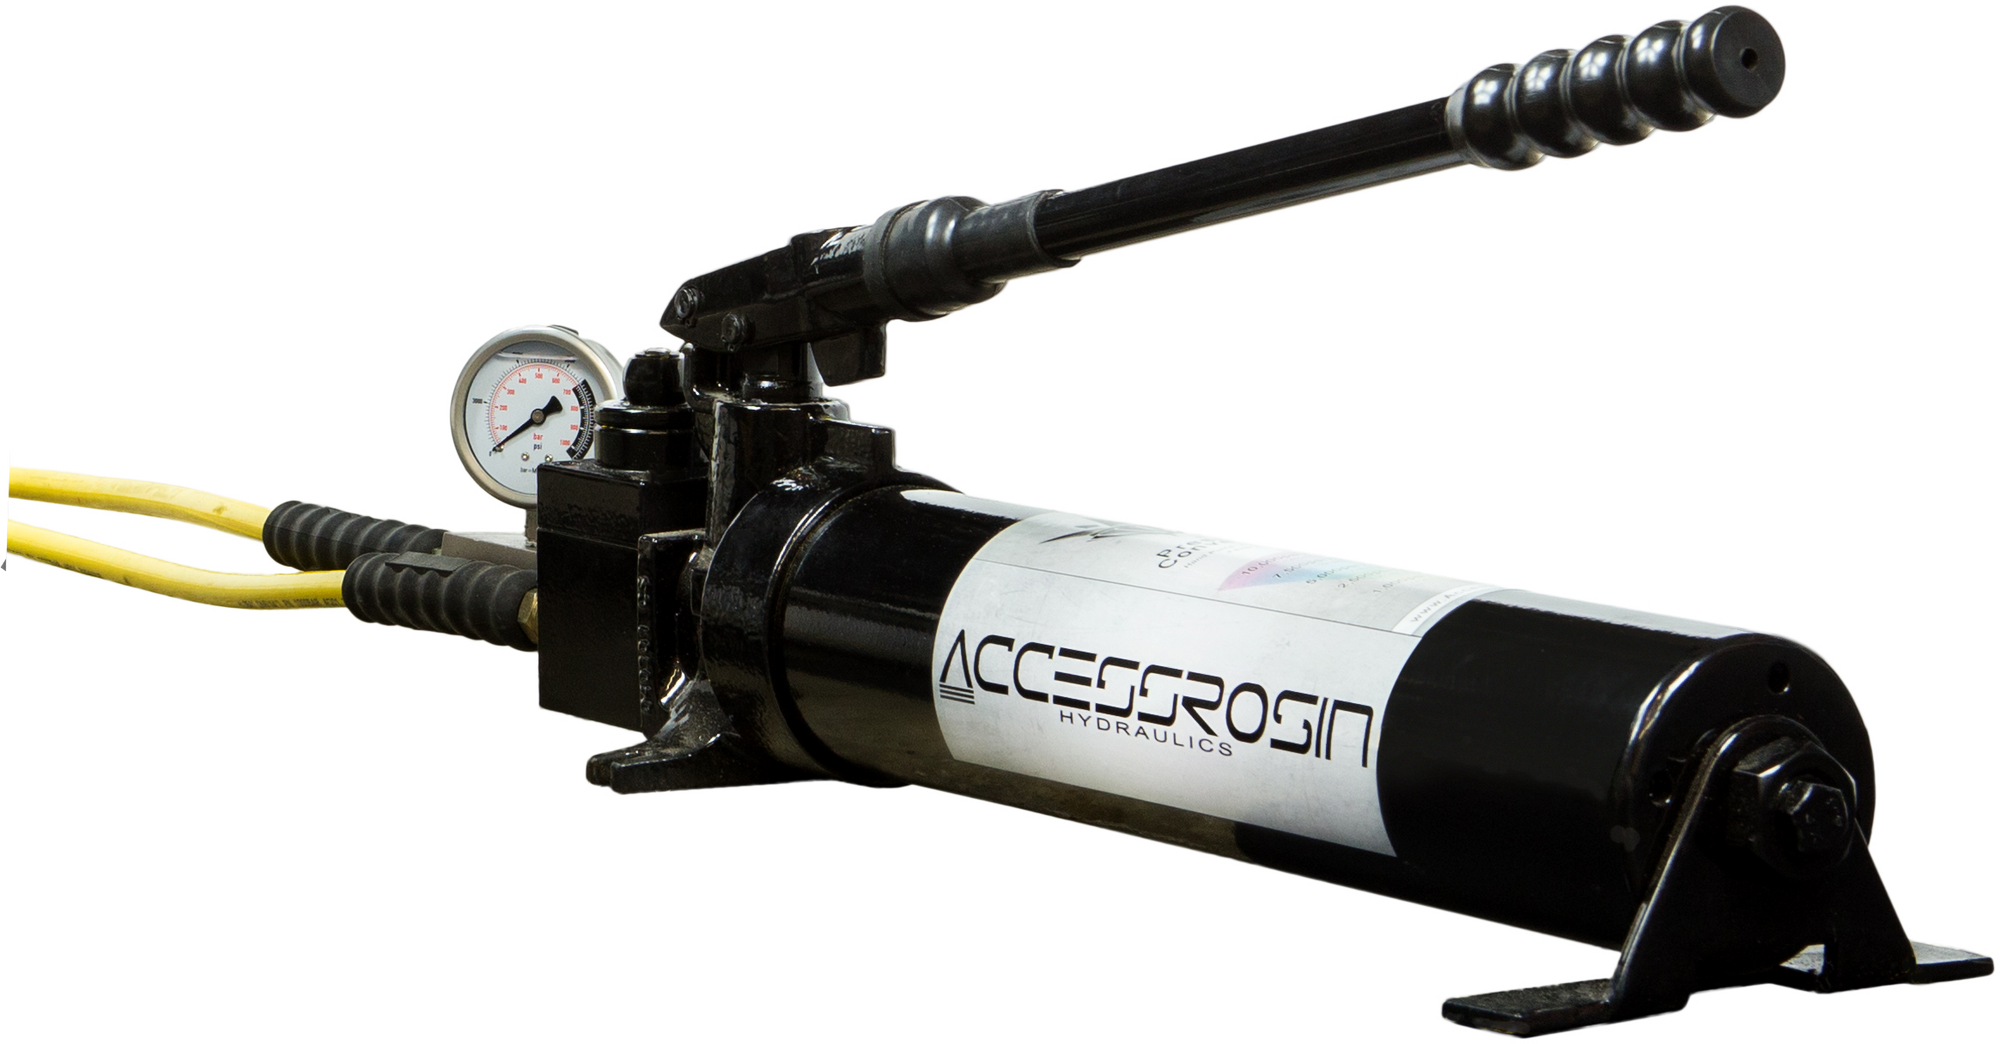 Hand Pump - Access Rosin